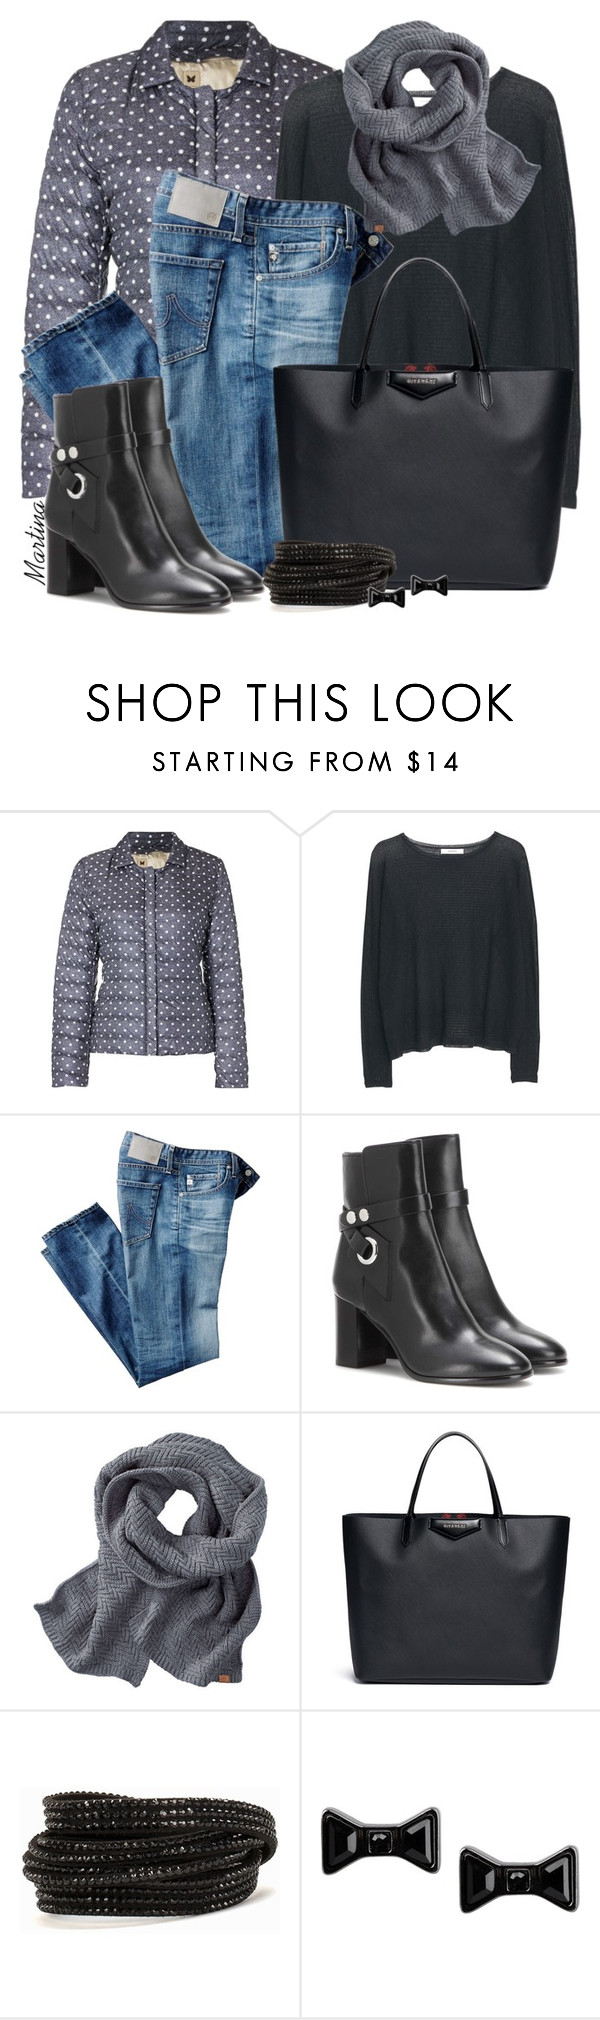 """""""Untitled #2355"""" by martina-cciv ❤ liked on Polyvore featuring MaxMara, MANGO, AG Adriano Goldschmied, Isabel Marant, Givenchy, Pieces, Marc by Marc Jacobs, women's clothing, women's fashion and women"""